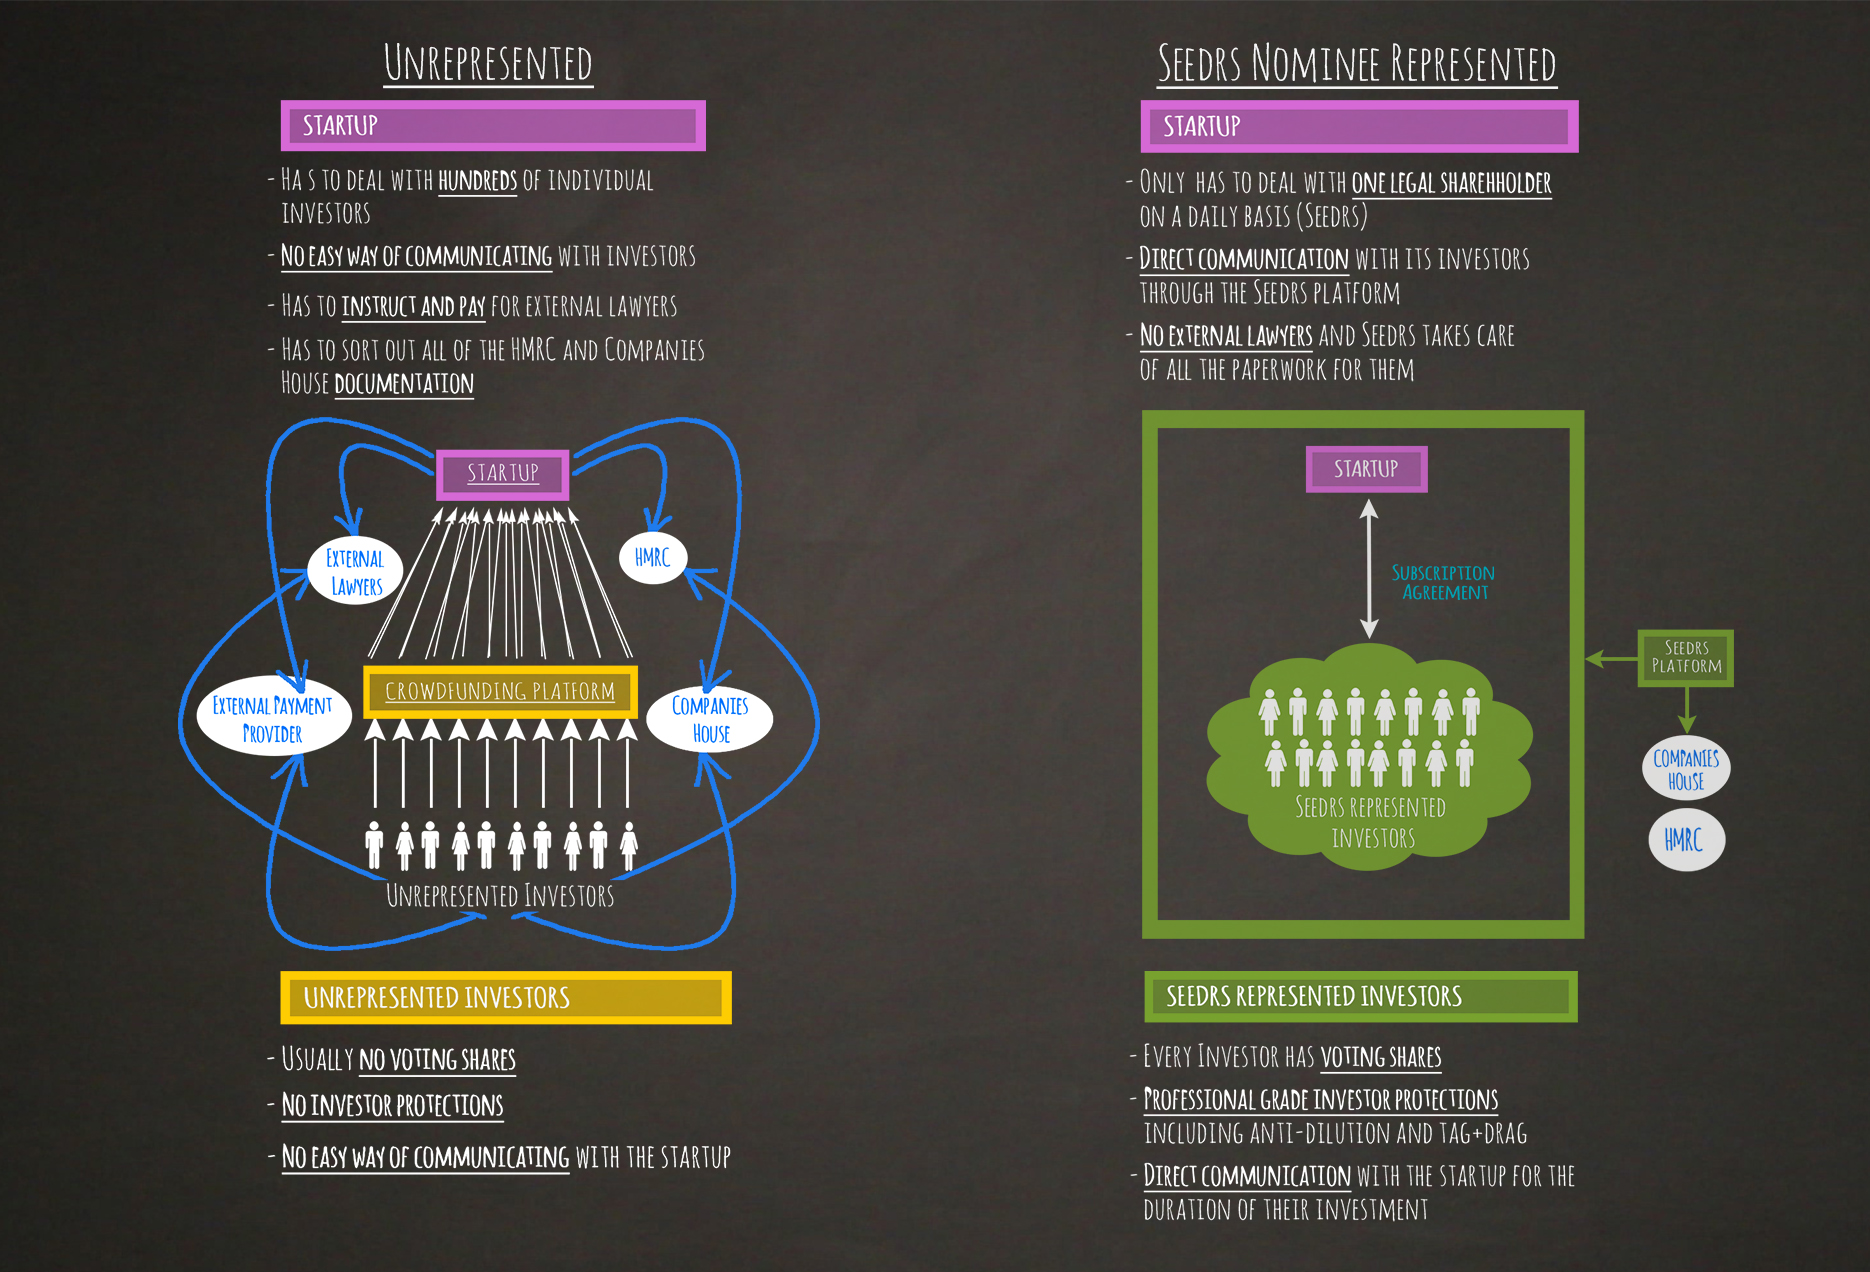 seedrs-nominee-diagram